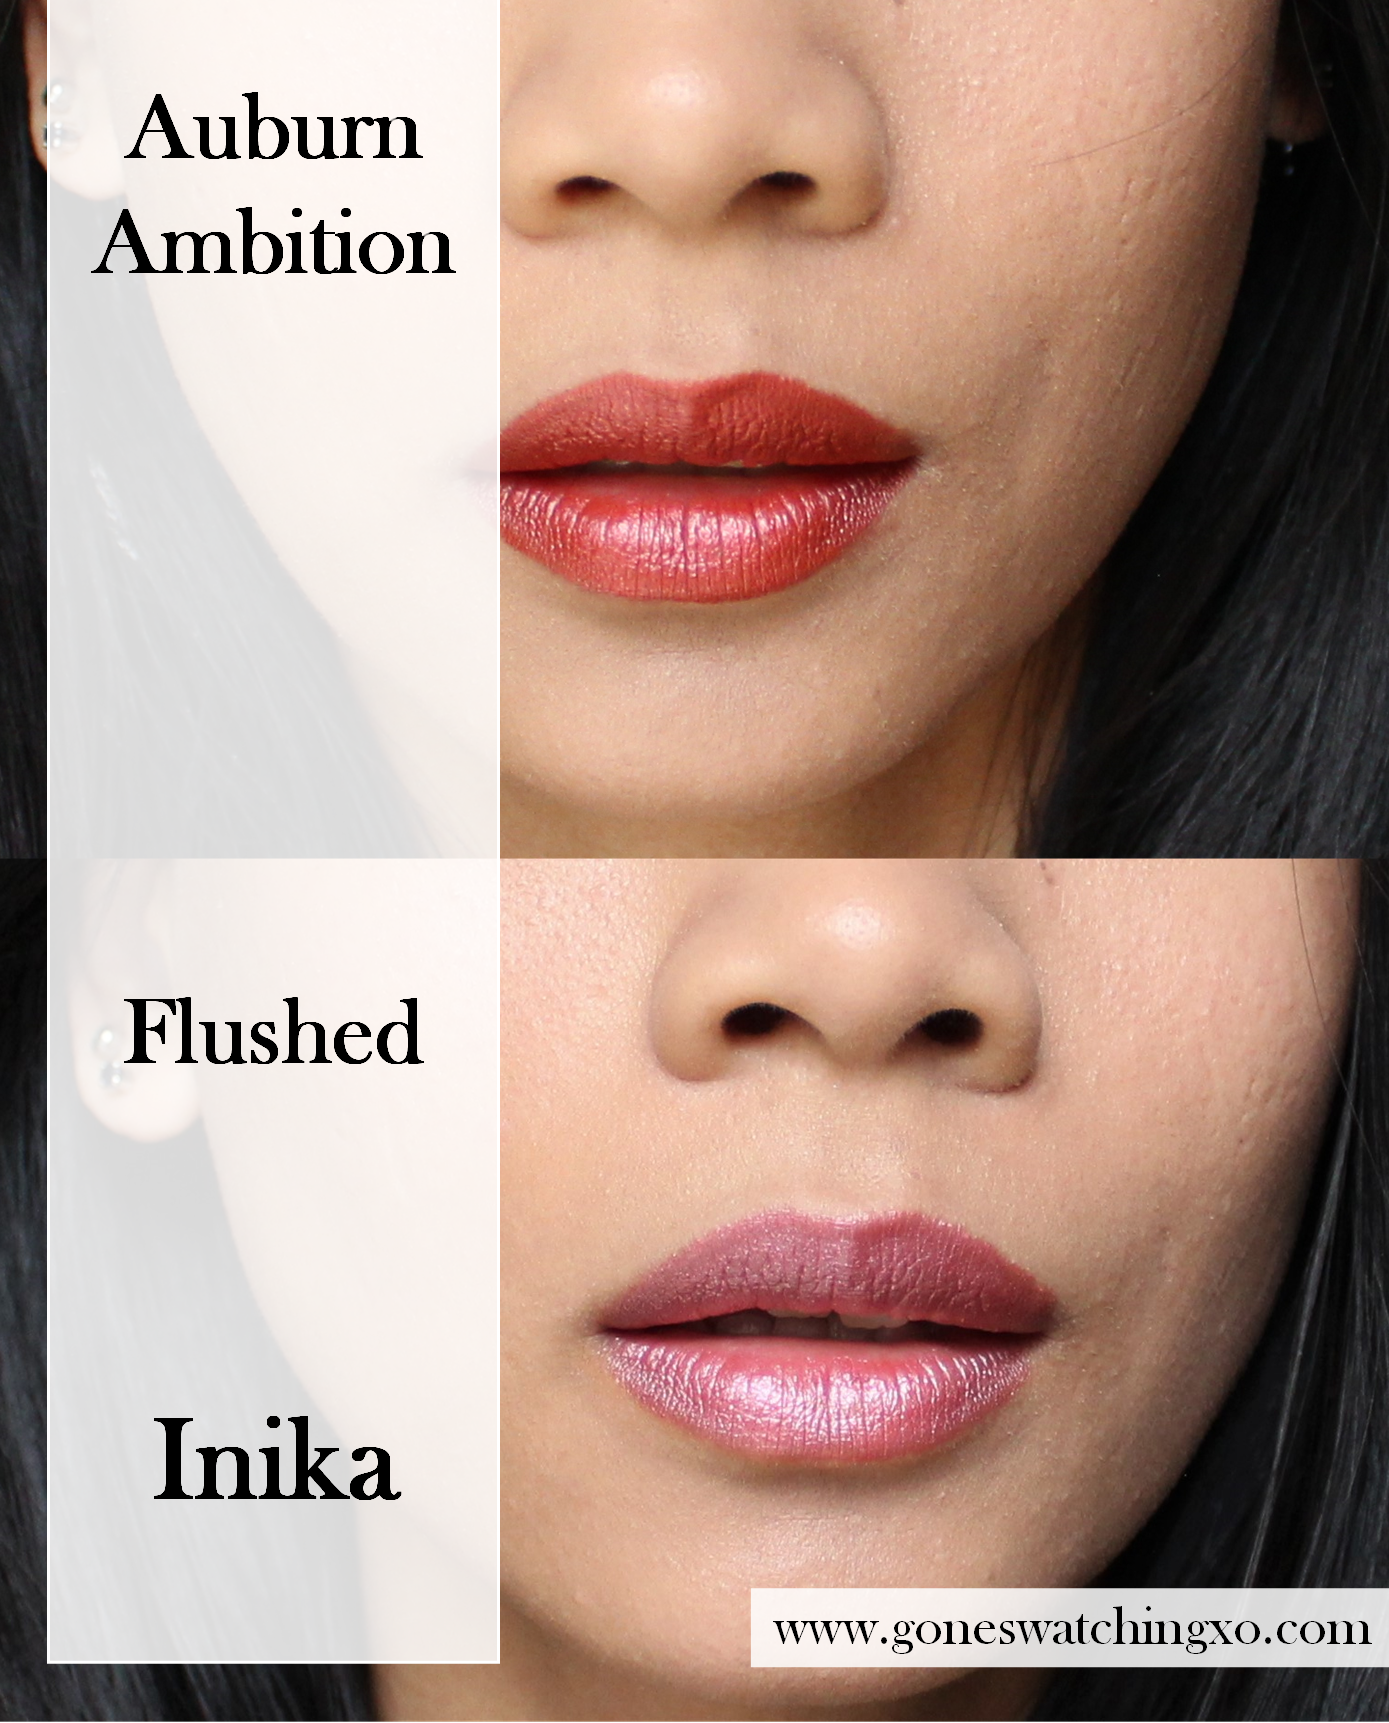 Inika Lipstick swatches on Asian Skin. All Natural